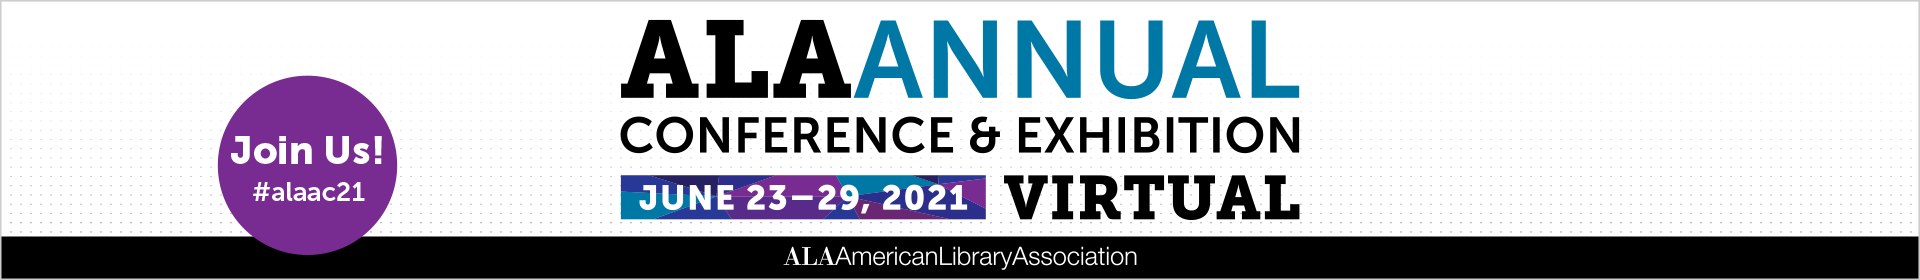 2021 Annual Conference Virtual Event Banner